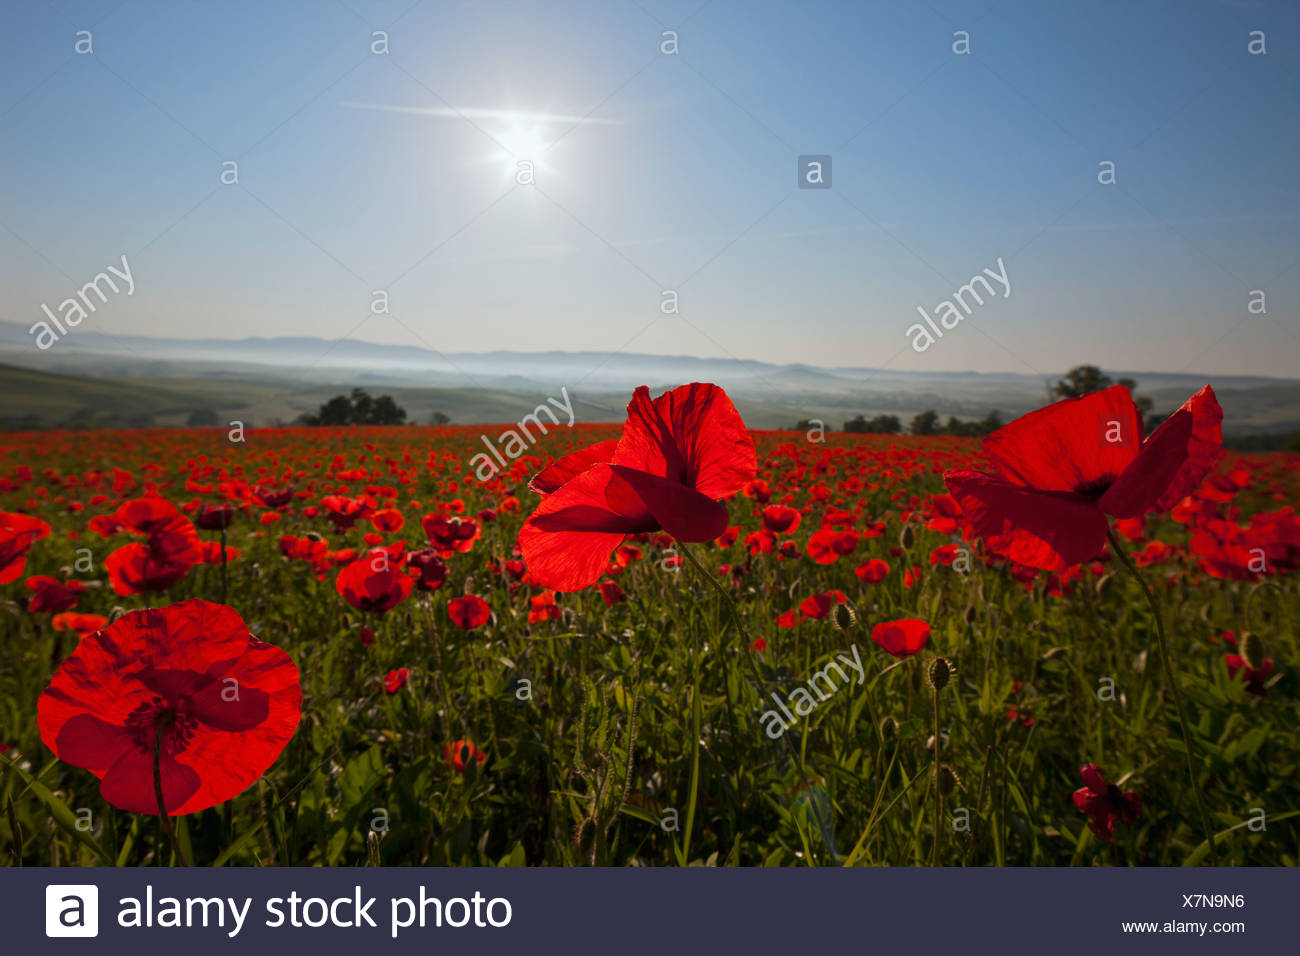 Italy, Tuscany, Crete, View of red poppy field at sunrise Stock Photo